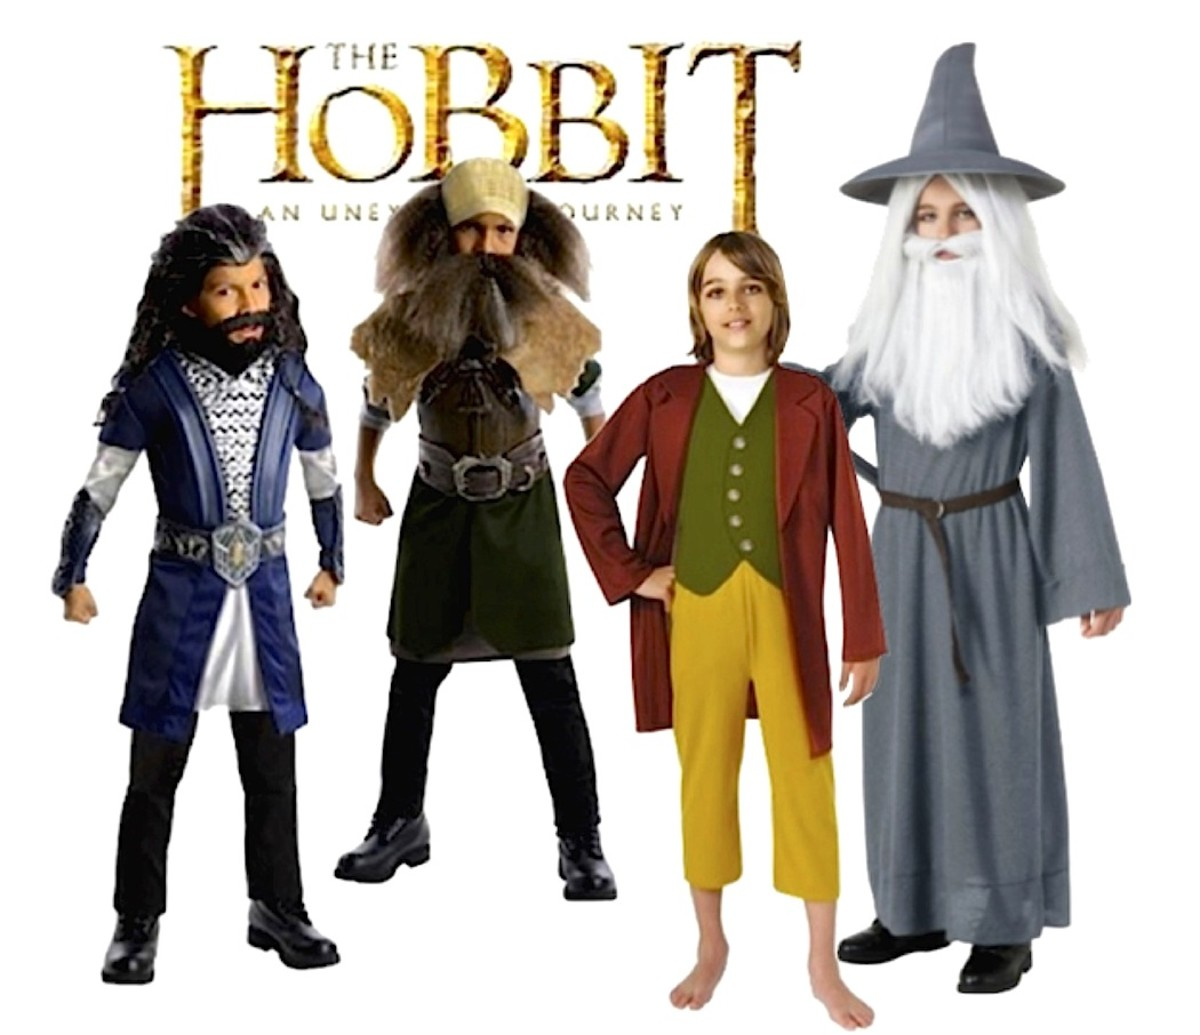 Hobbit Deluxe Costumes for Kids Left to Right: Thorin, Dwalin, Bilbo Baggins, and Gandalf the Grey Costumes for Kids. All Available at